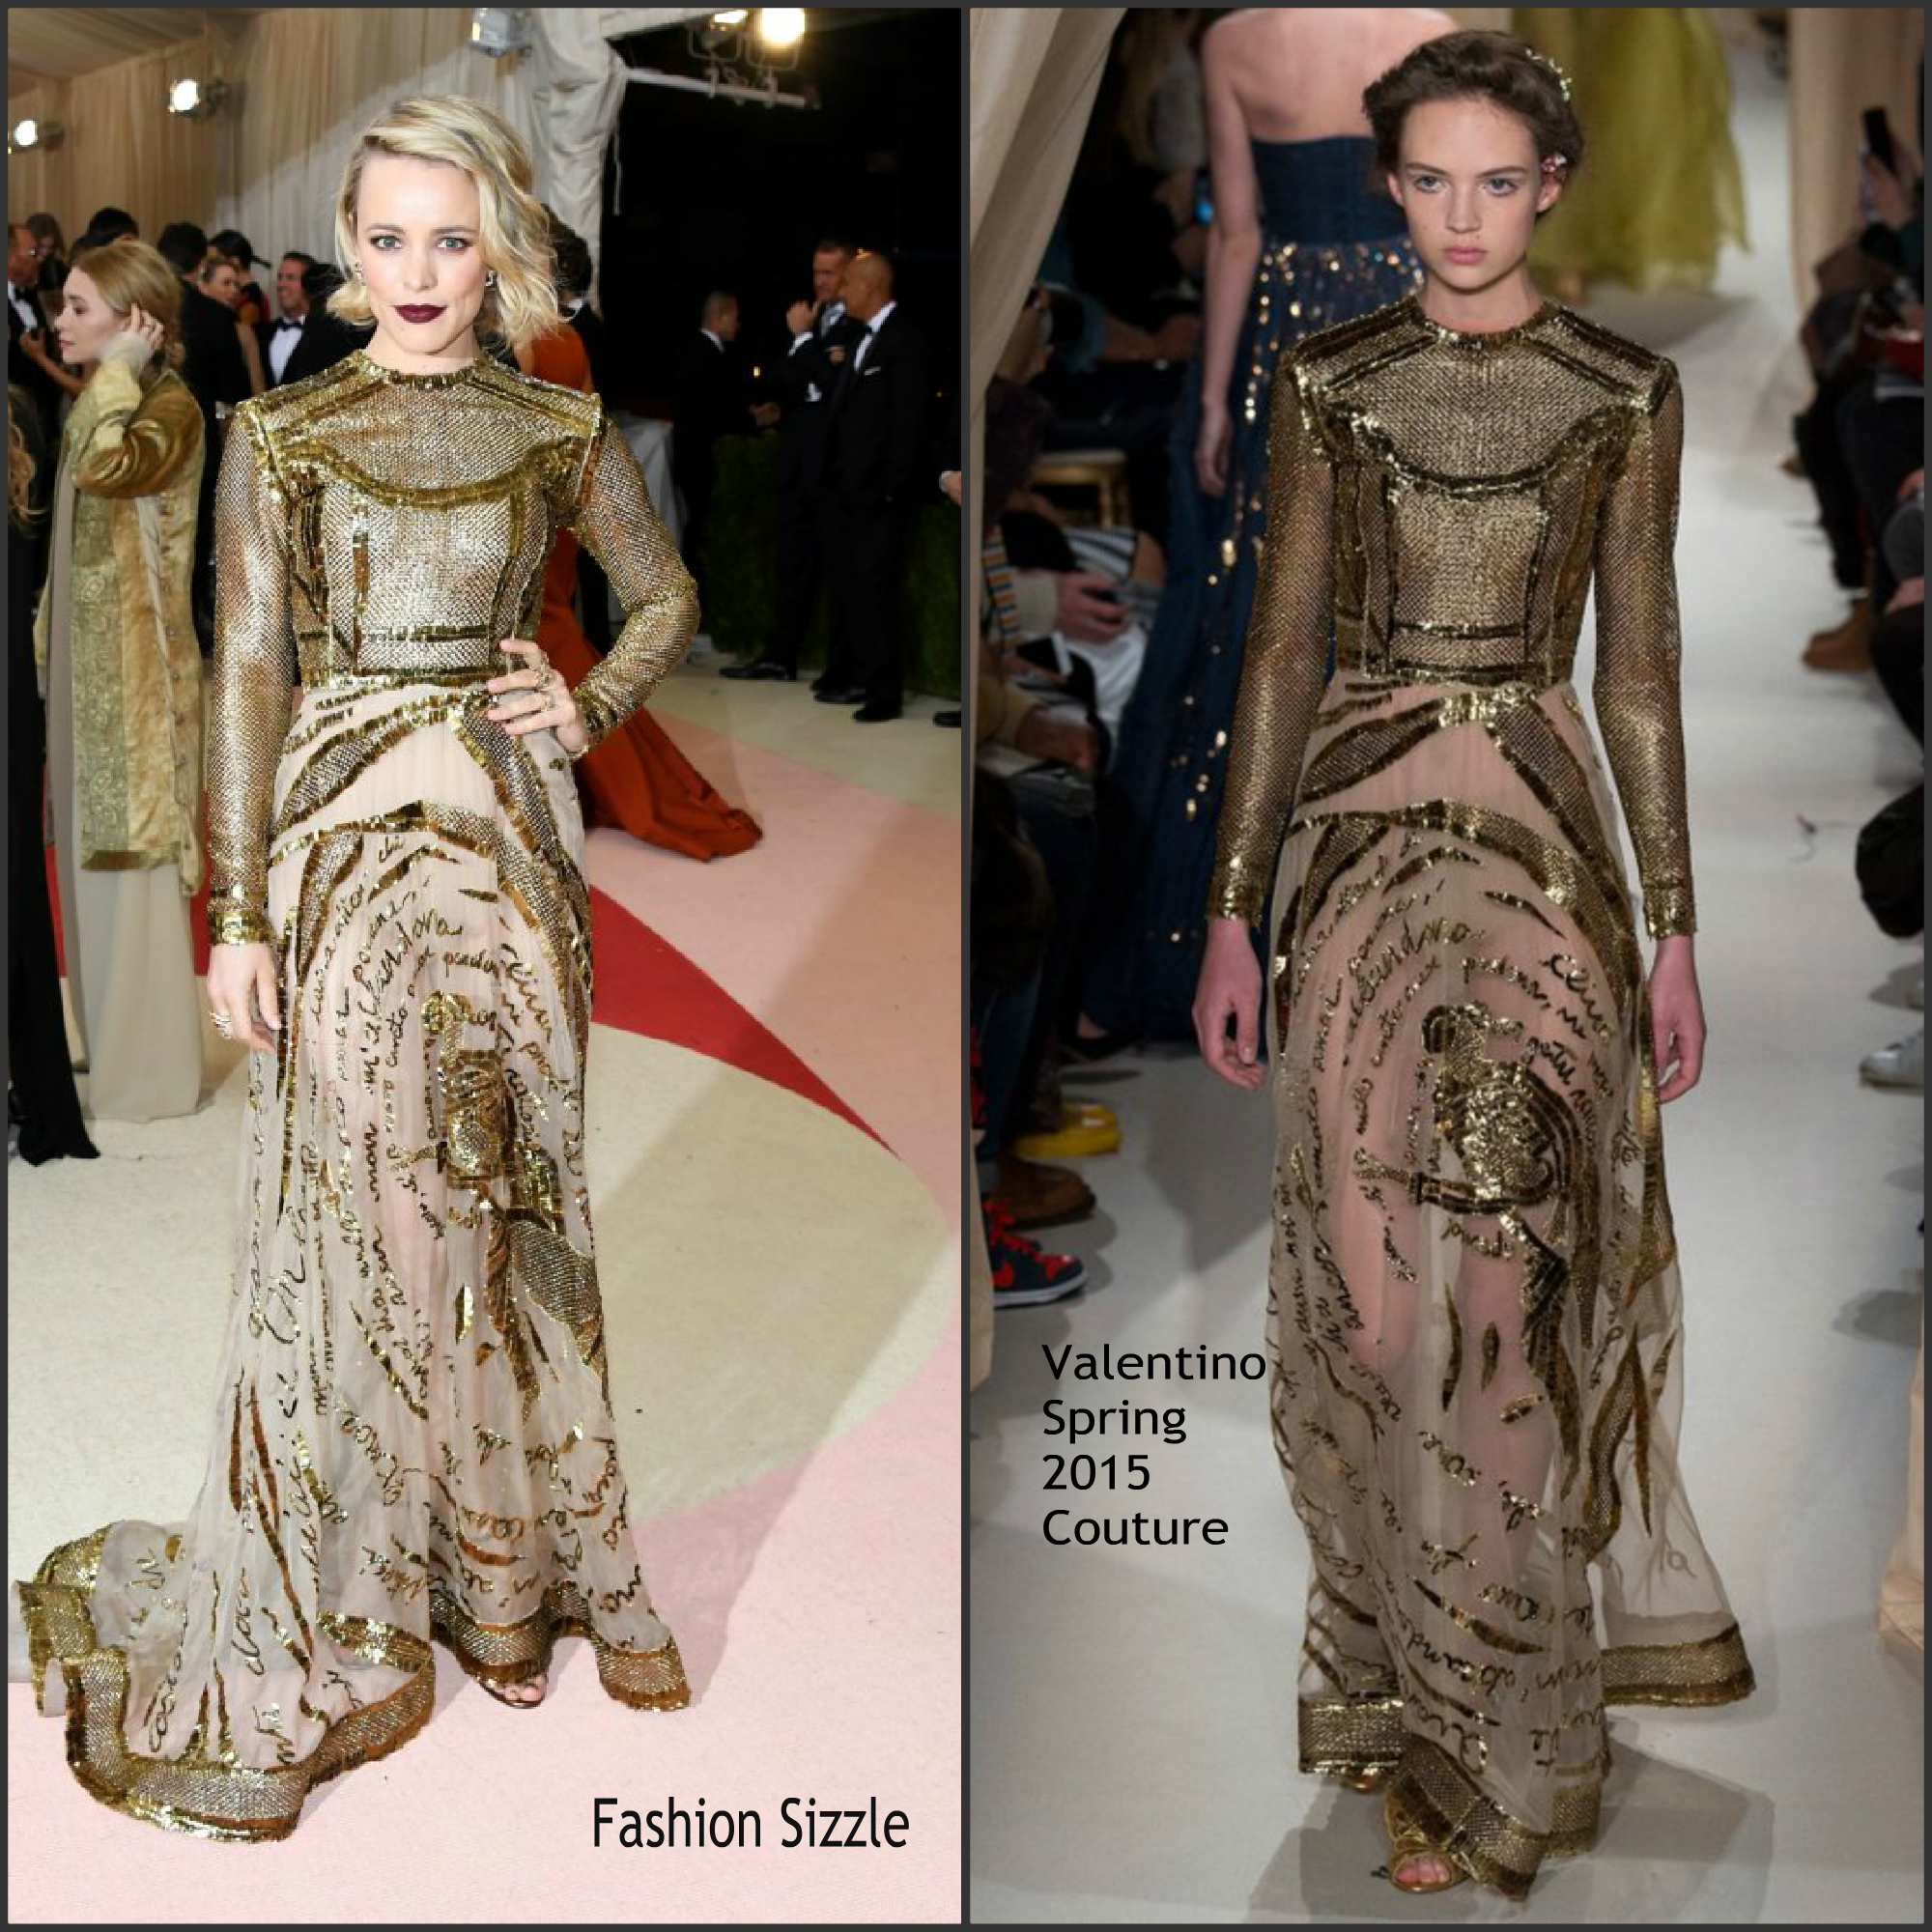 rachel mcadams in valentino couture at the 2016 met gala fashion sizzle. Black Bedroom Furniture Sets. Home Design Ideas